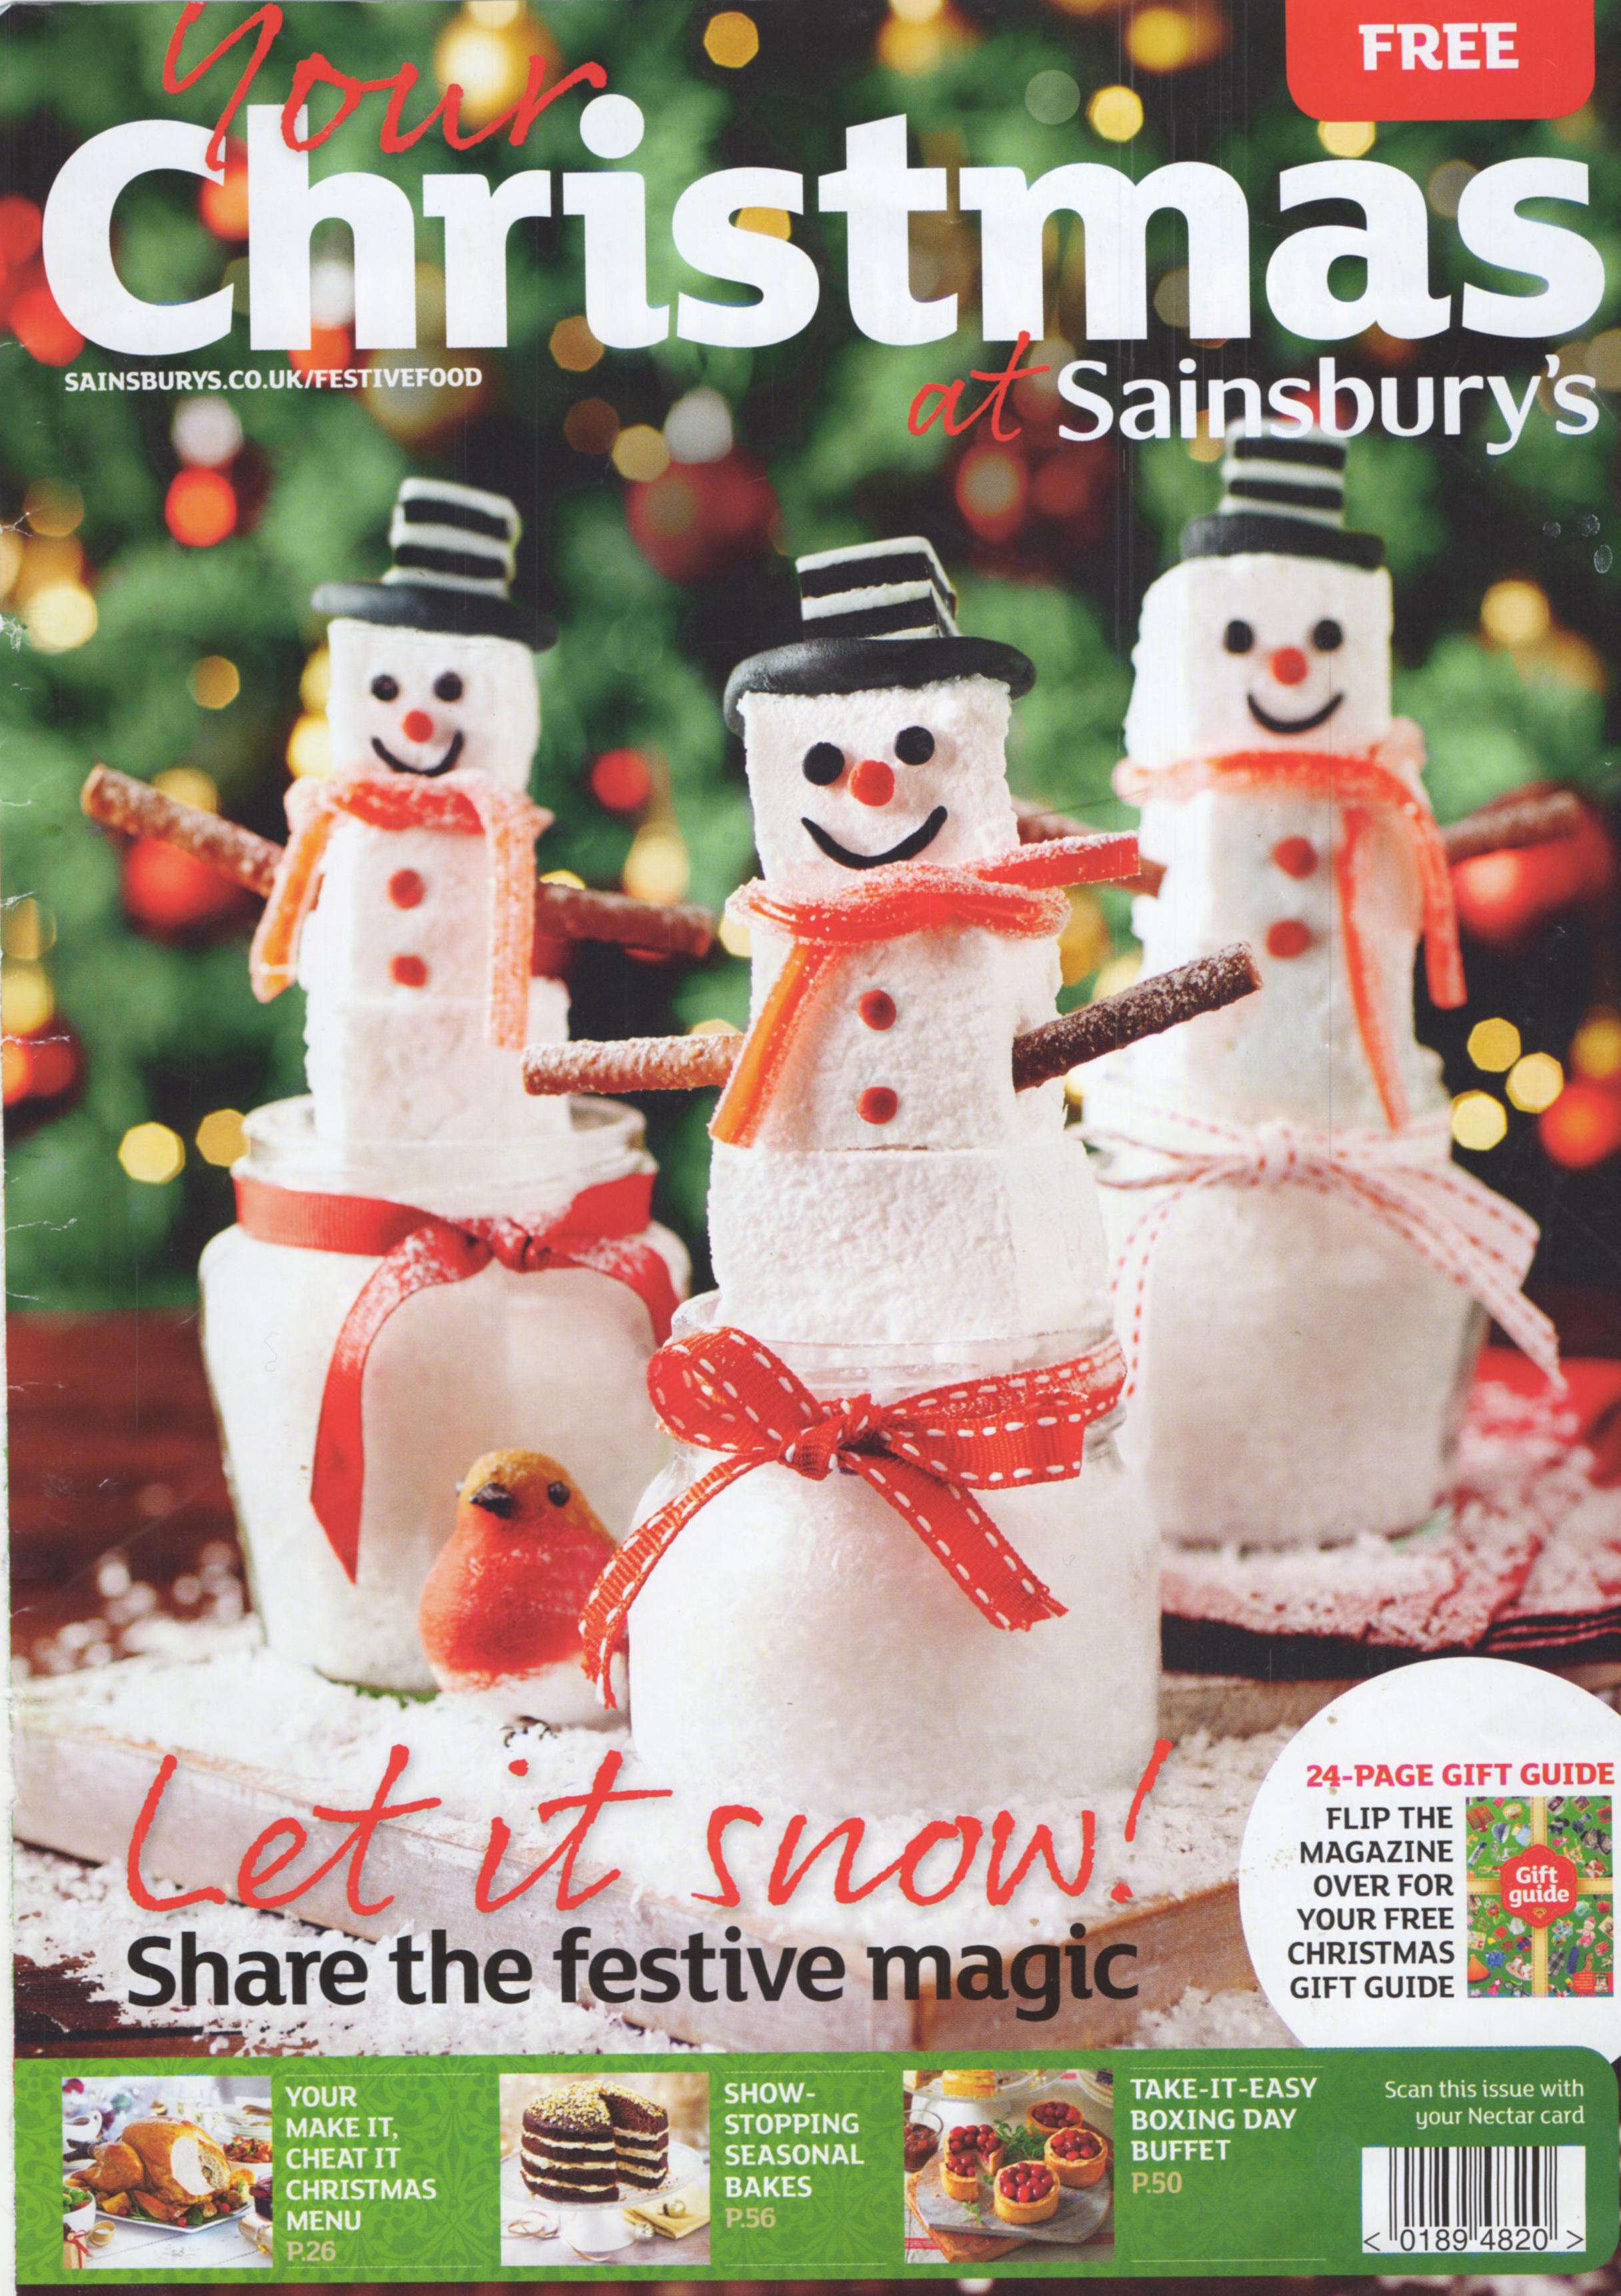 Sainsbury's Christmas Magazine 2014: 25 day countdown to Christmas